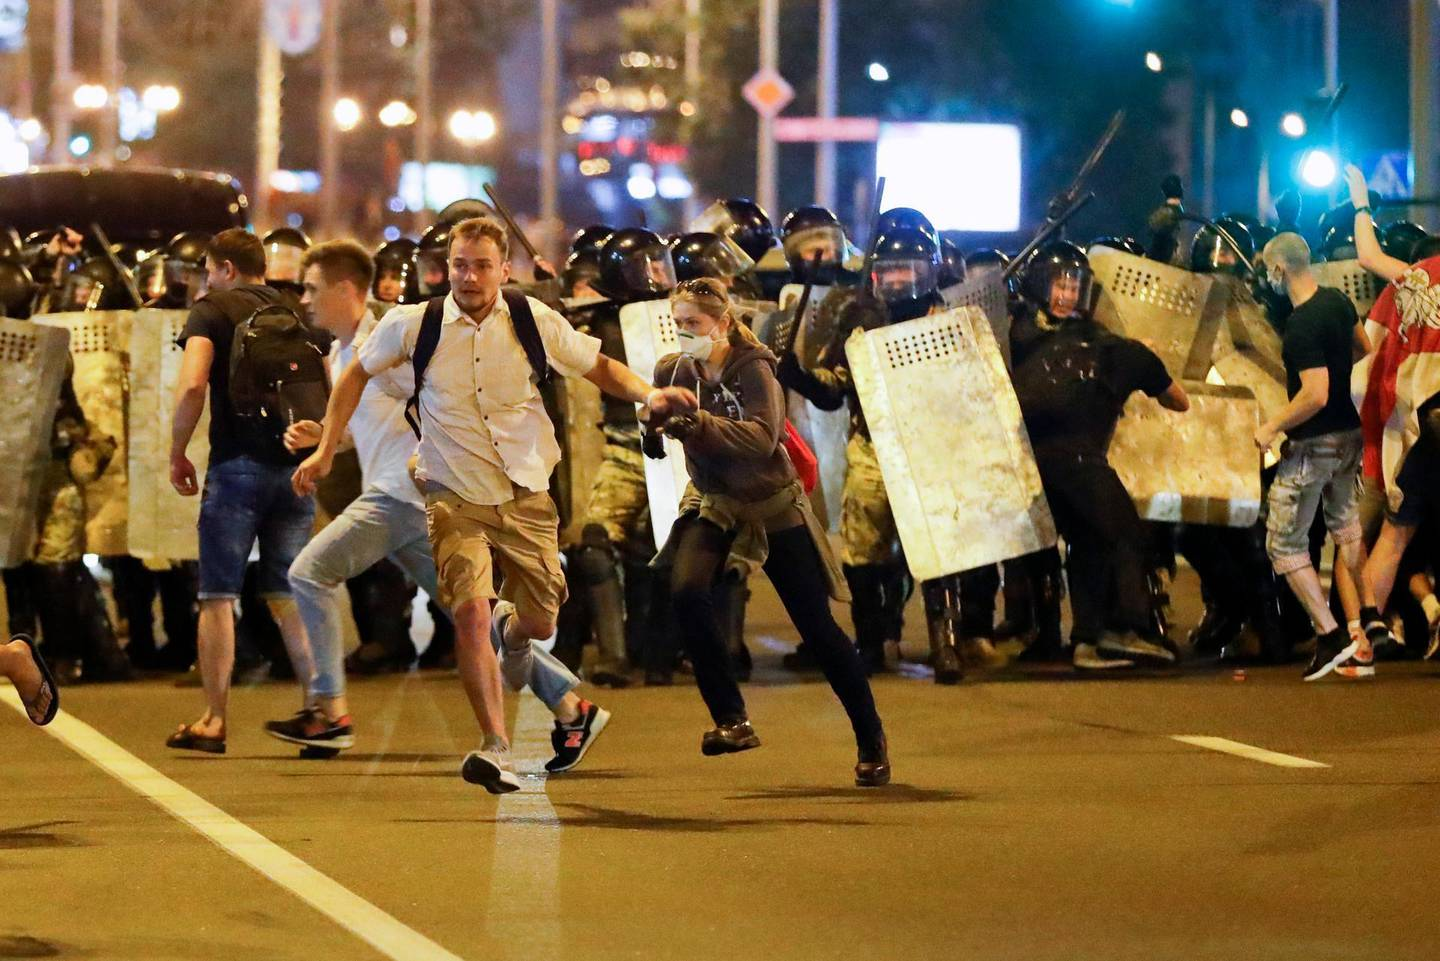 Demonstrators run away from police as they gather to protest against a result of the Belarusian presidential election in Minsk, Belarus, Sunday, Aug. 9, 2020. Police and protesters clashed in Belarus' capital and the major city of Brest on Sunday after the presidential election in which the authoritarian leader who has ruled for a quarter-century sought a sixth term in office. (AP Photo/Sergei Grits)